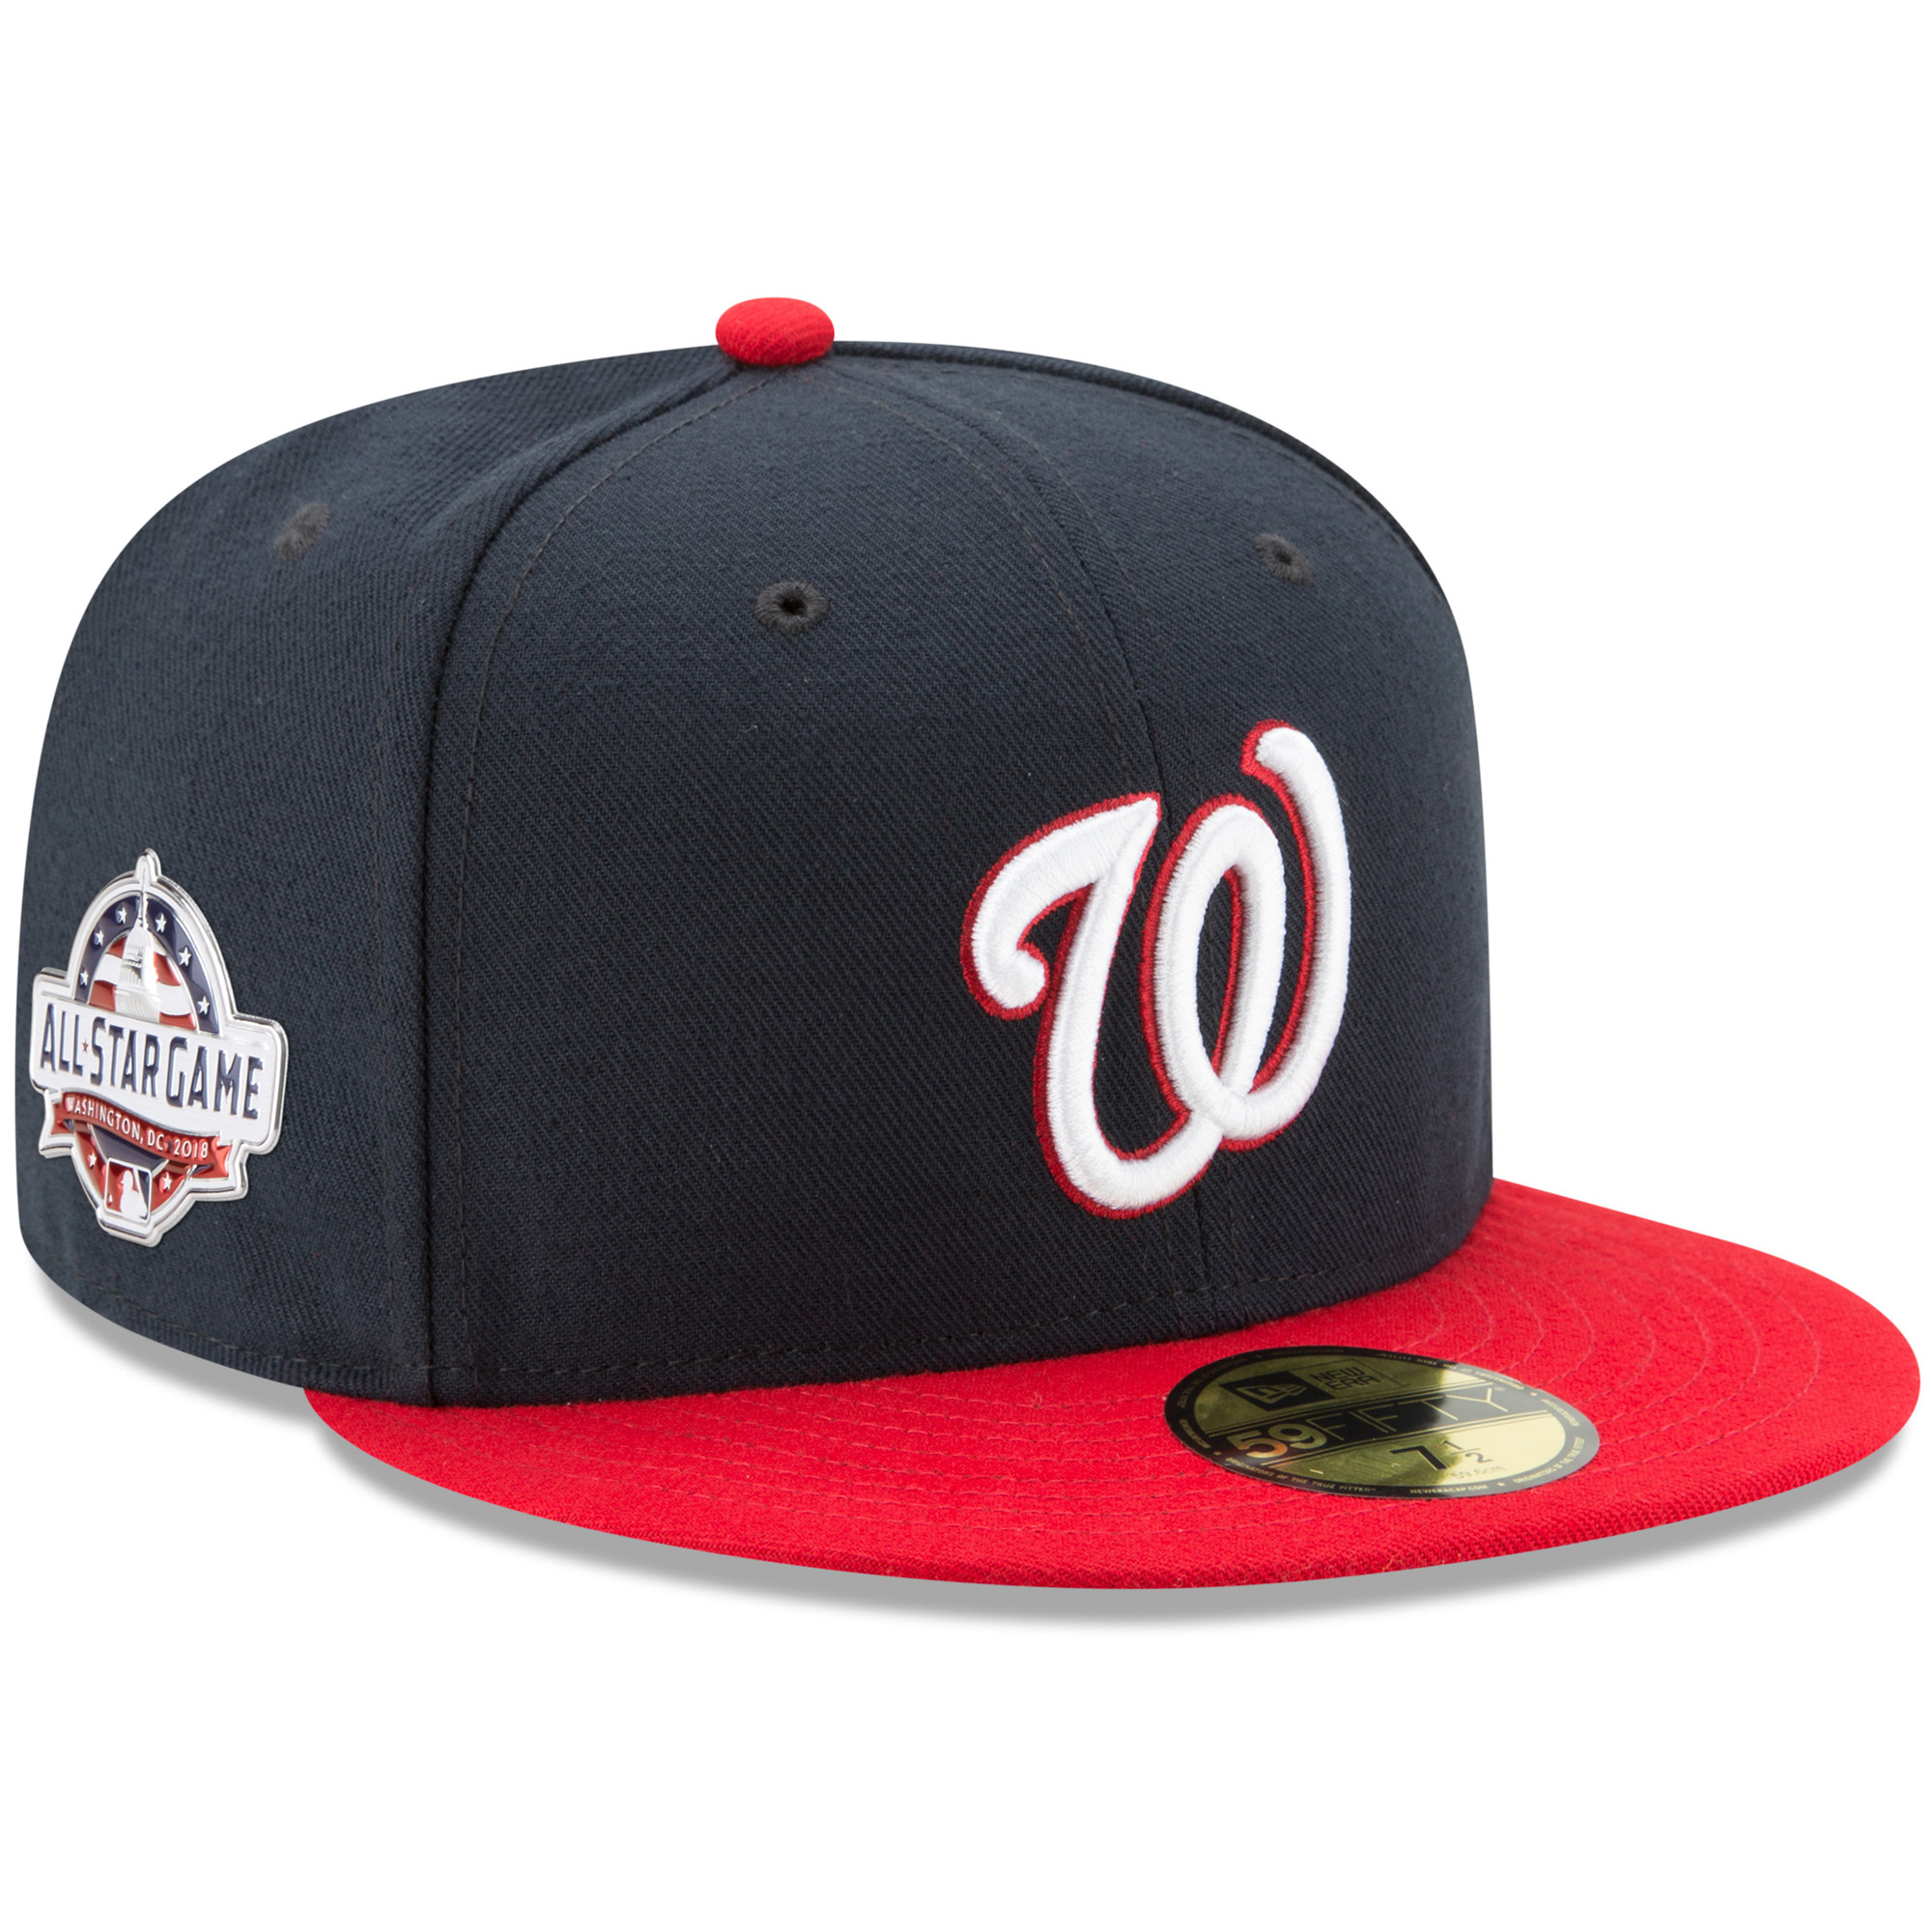 Washington Nationals New Era All-Star Game Alternate Authentic Collection On-Field 59FIFTY Fitted Hat - Navy